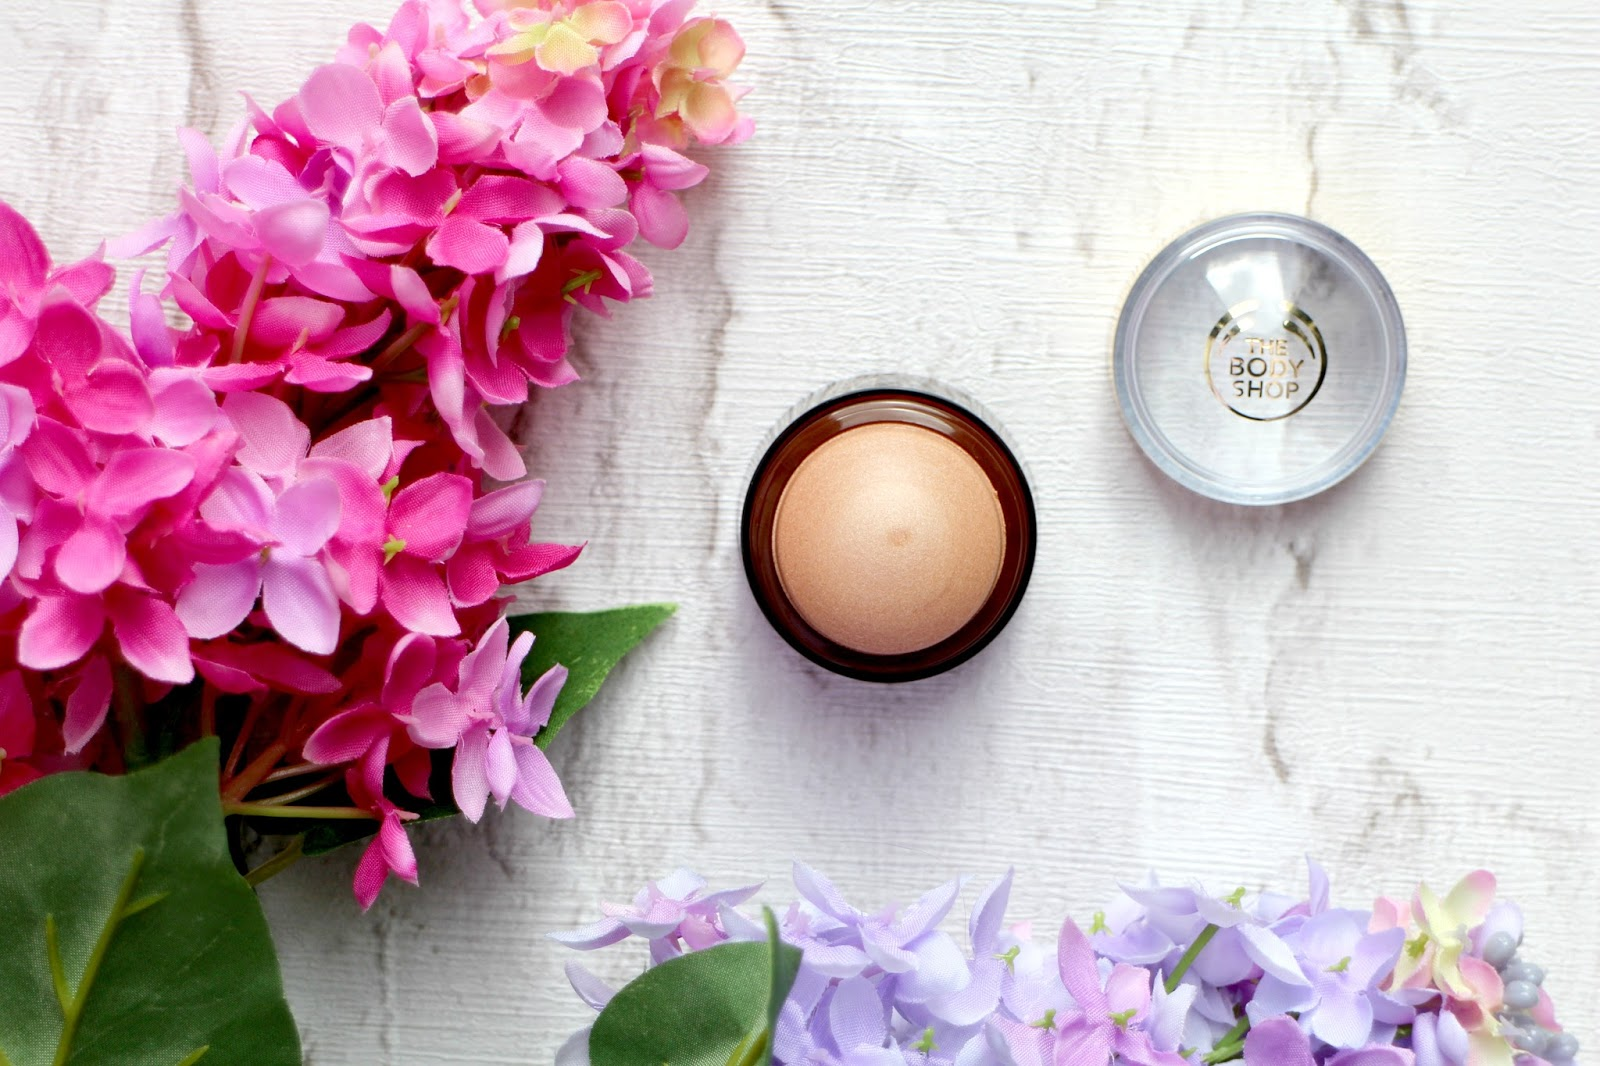 The Body Shop Honey Bronze Highlighting Dome Review